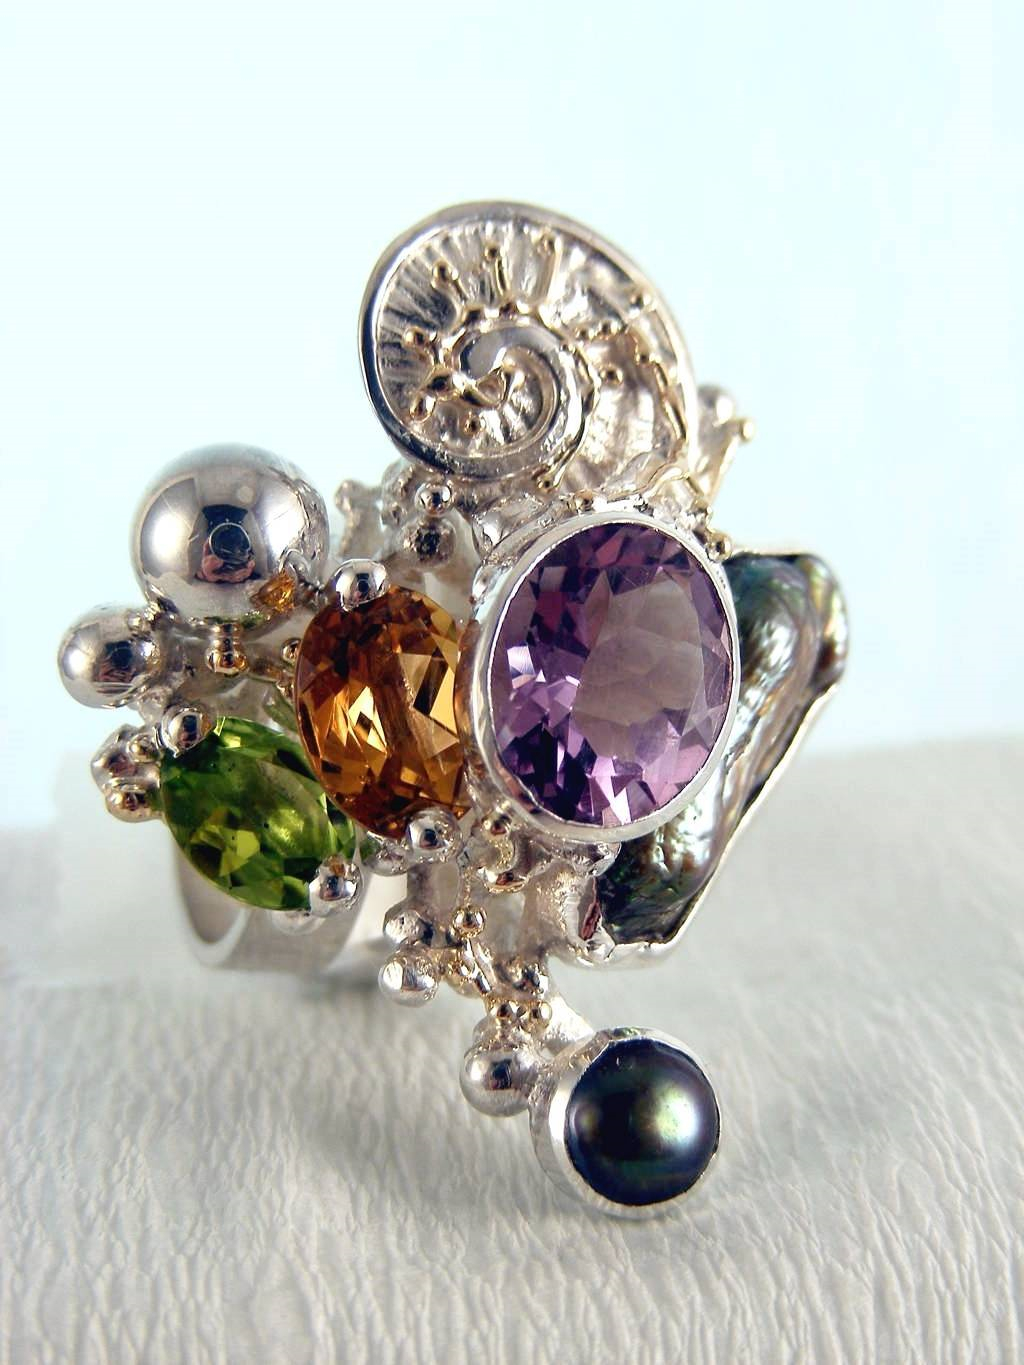 jewellery in art and craft galleries, gregory pyra piro cyber ring 1565, mixed metal jewellery in silver and gold, one of a kind ring in silver and gold, ring with peridot and citrine, ring with amethyst and peridot, handcrafted ring with biwa pearl